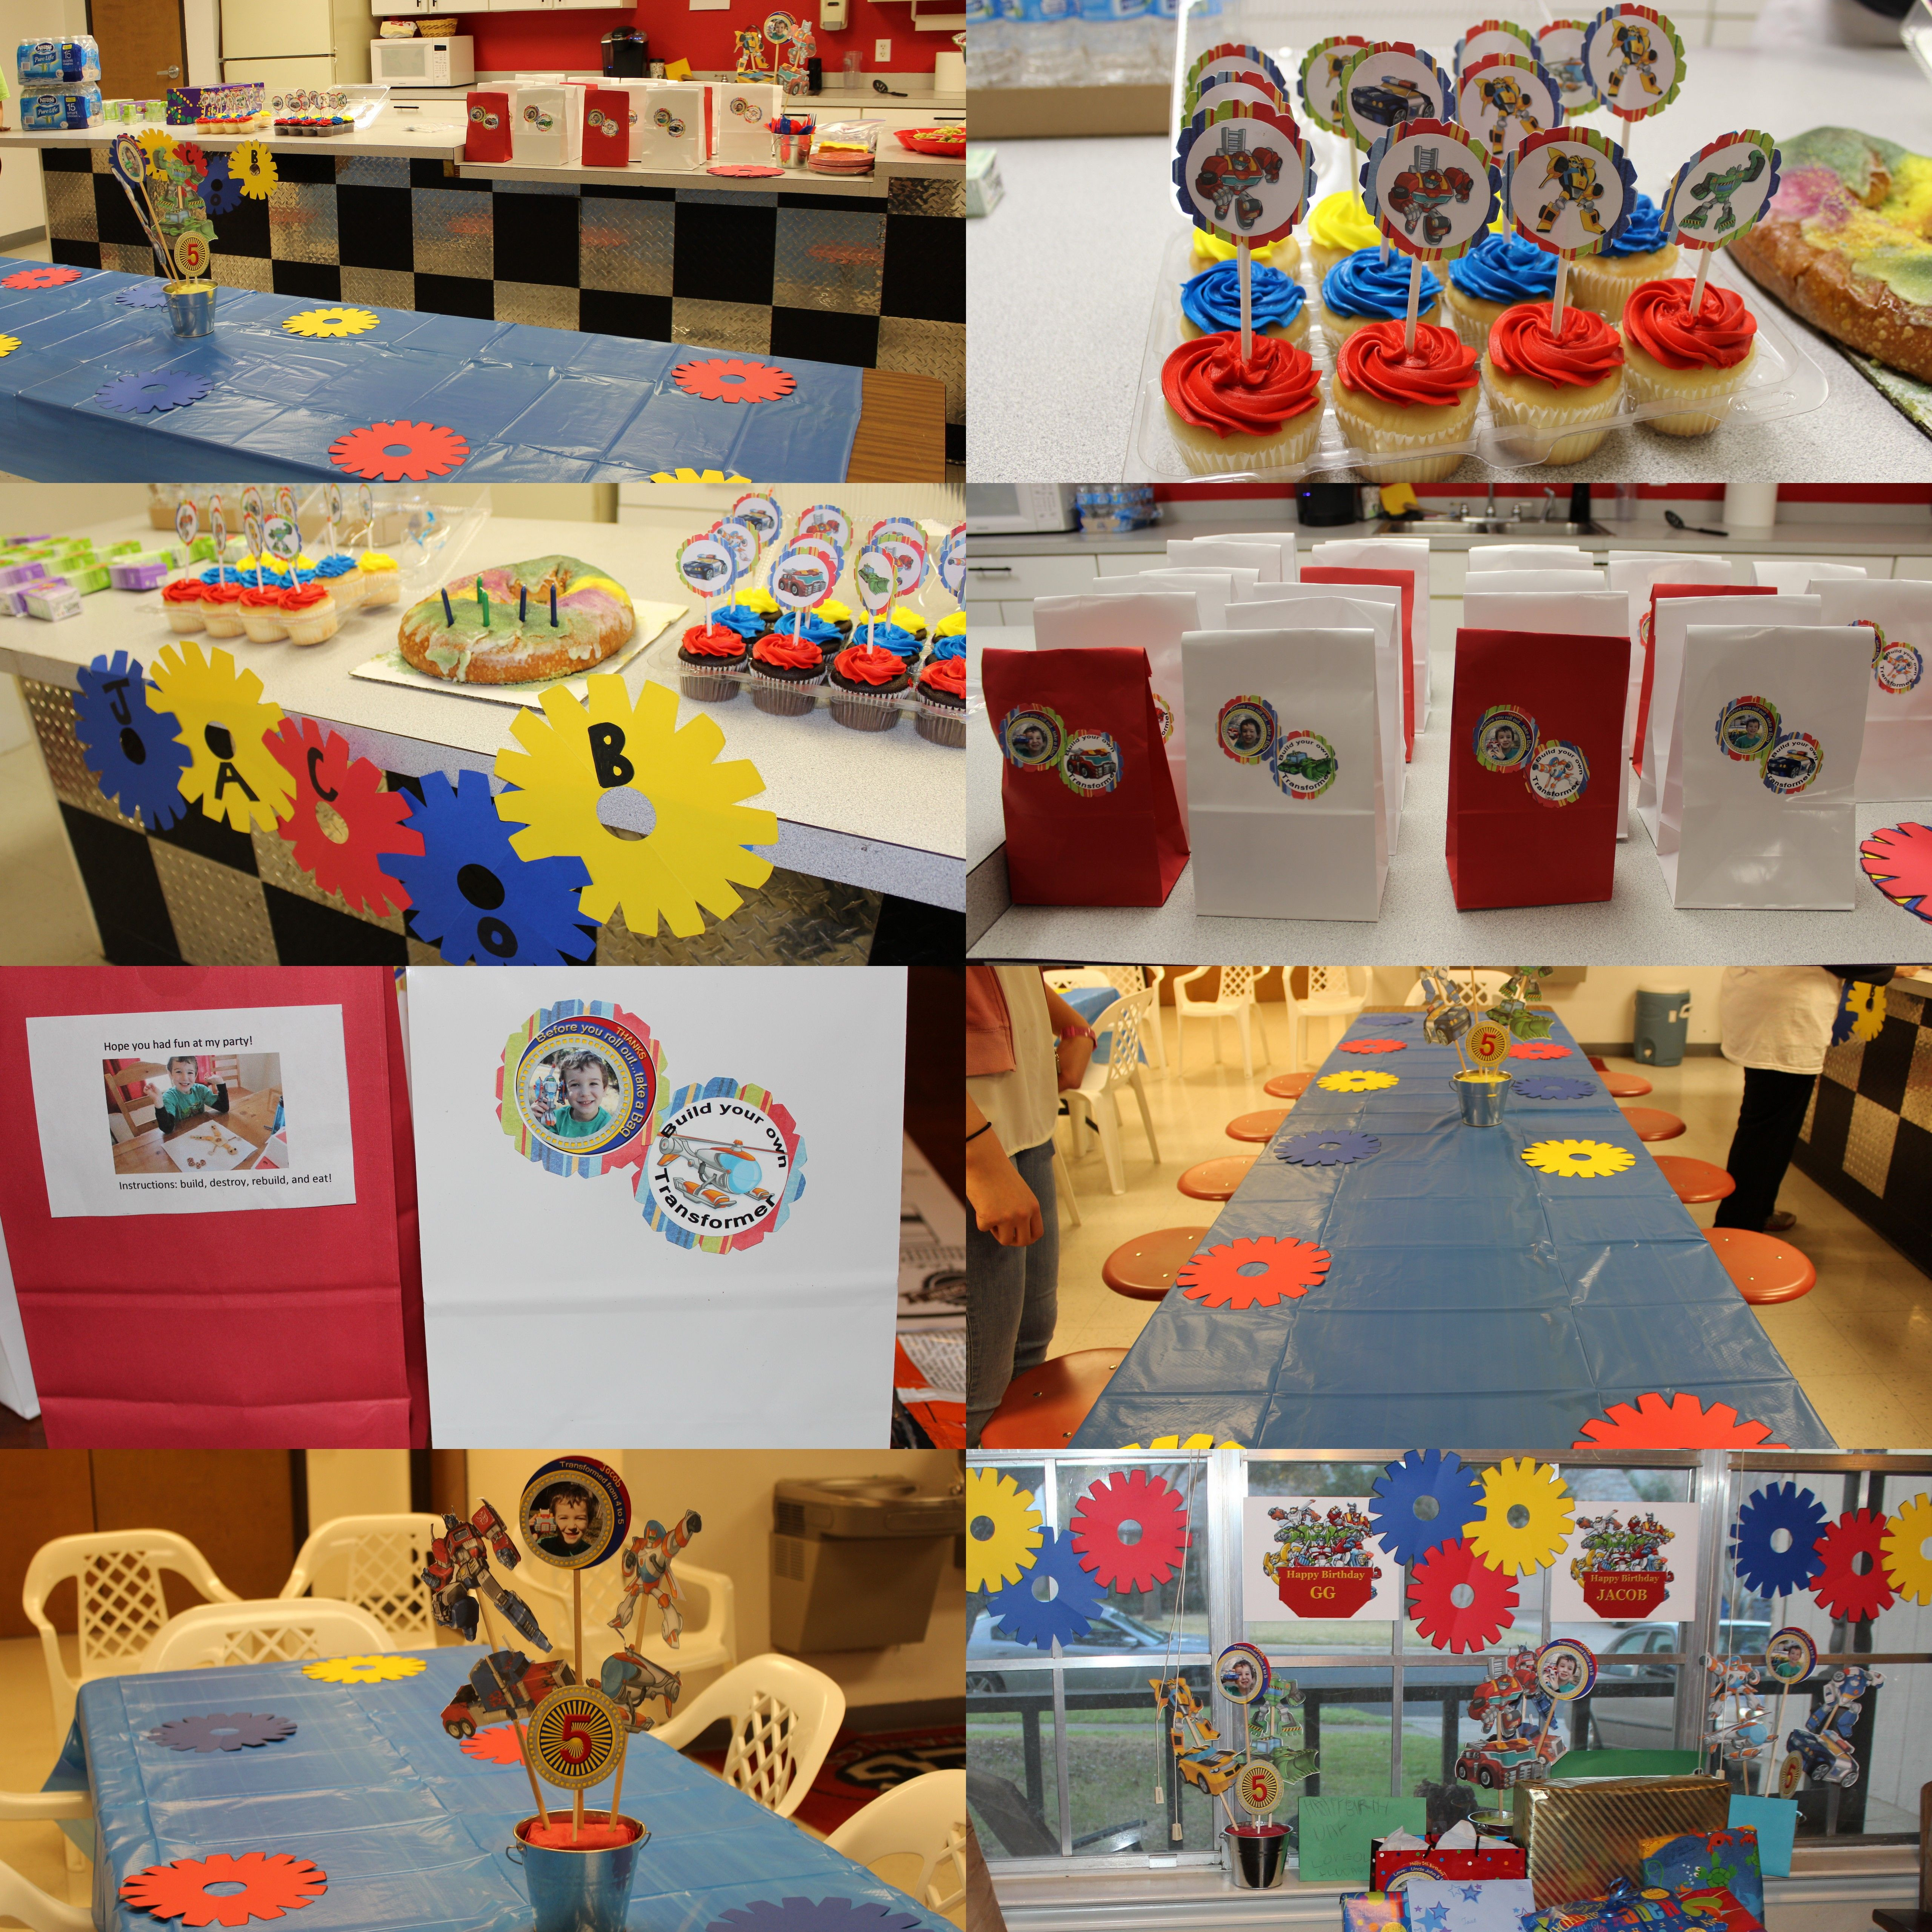 Best ideas about Rescue Bots Birthday Party . Save or Pin Transformers Party Ideas & Inspirations Now.